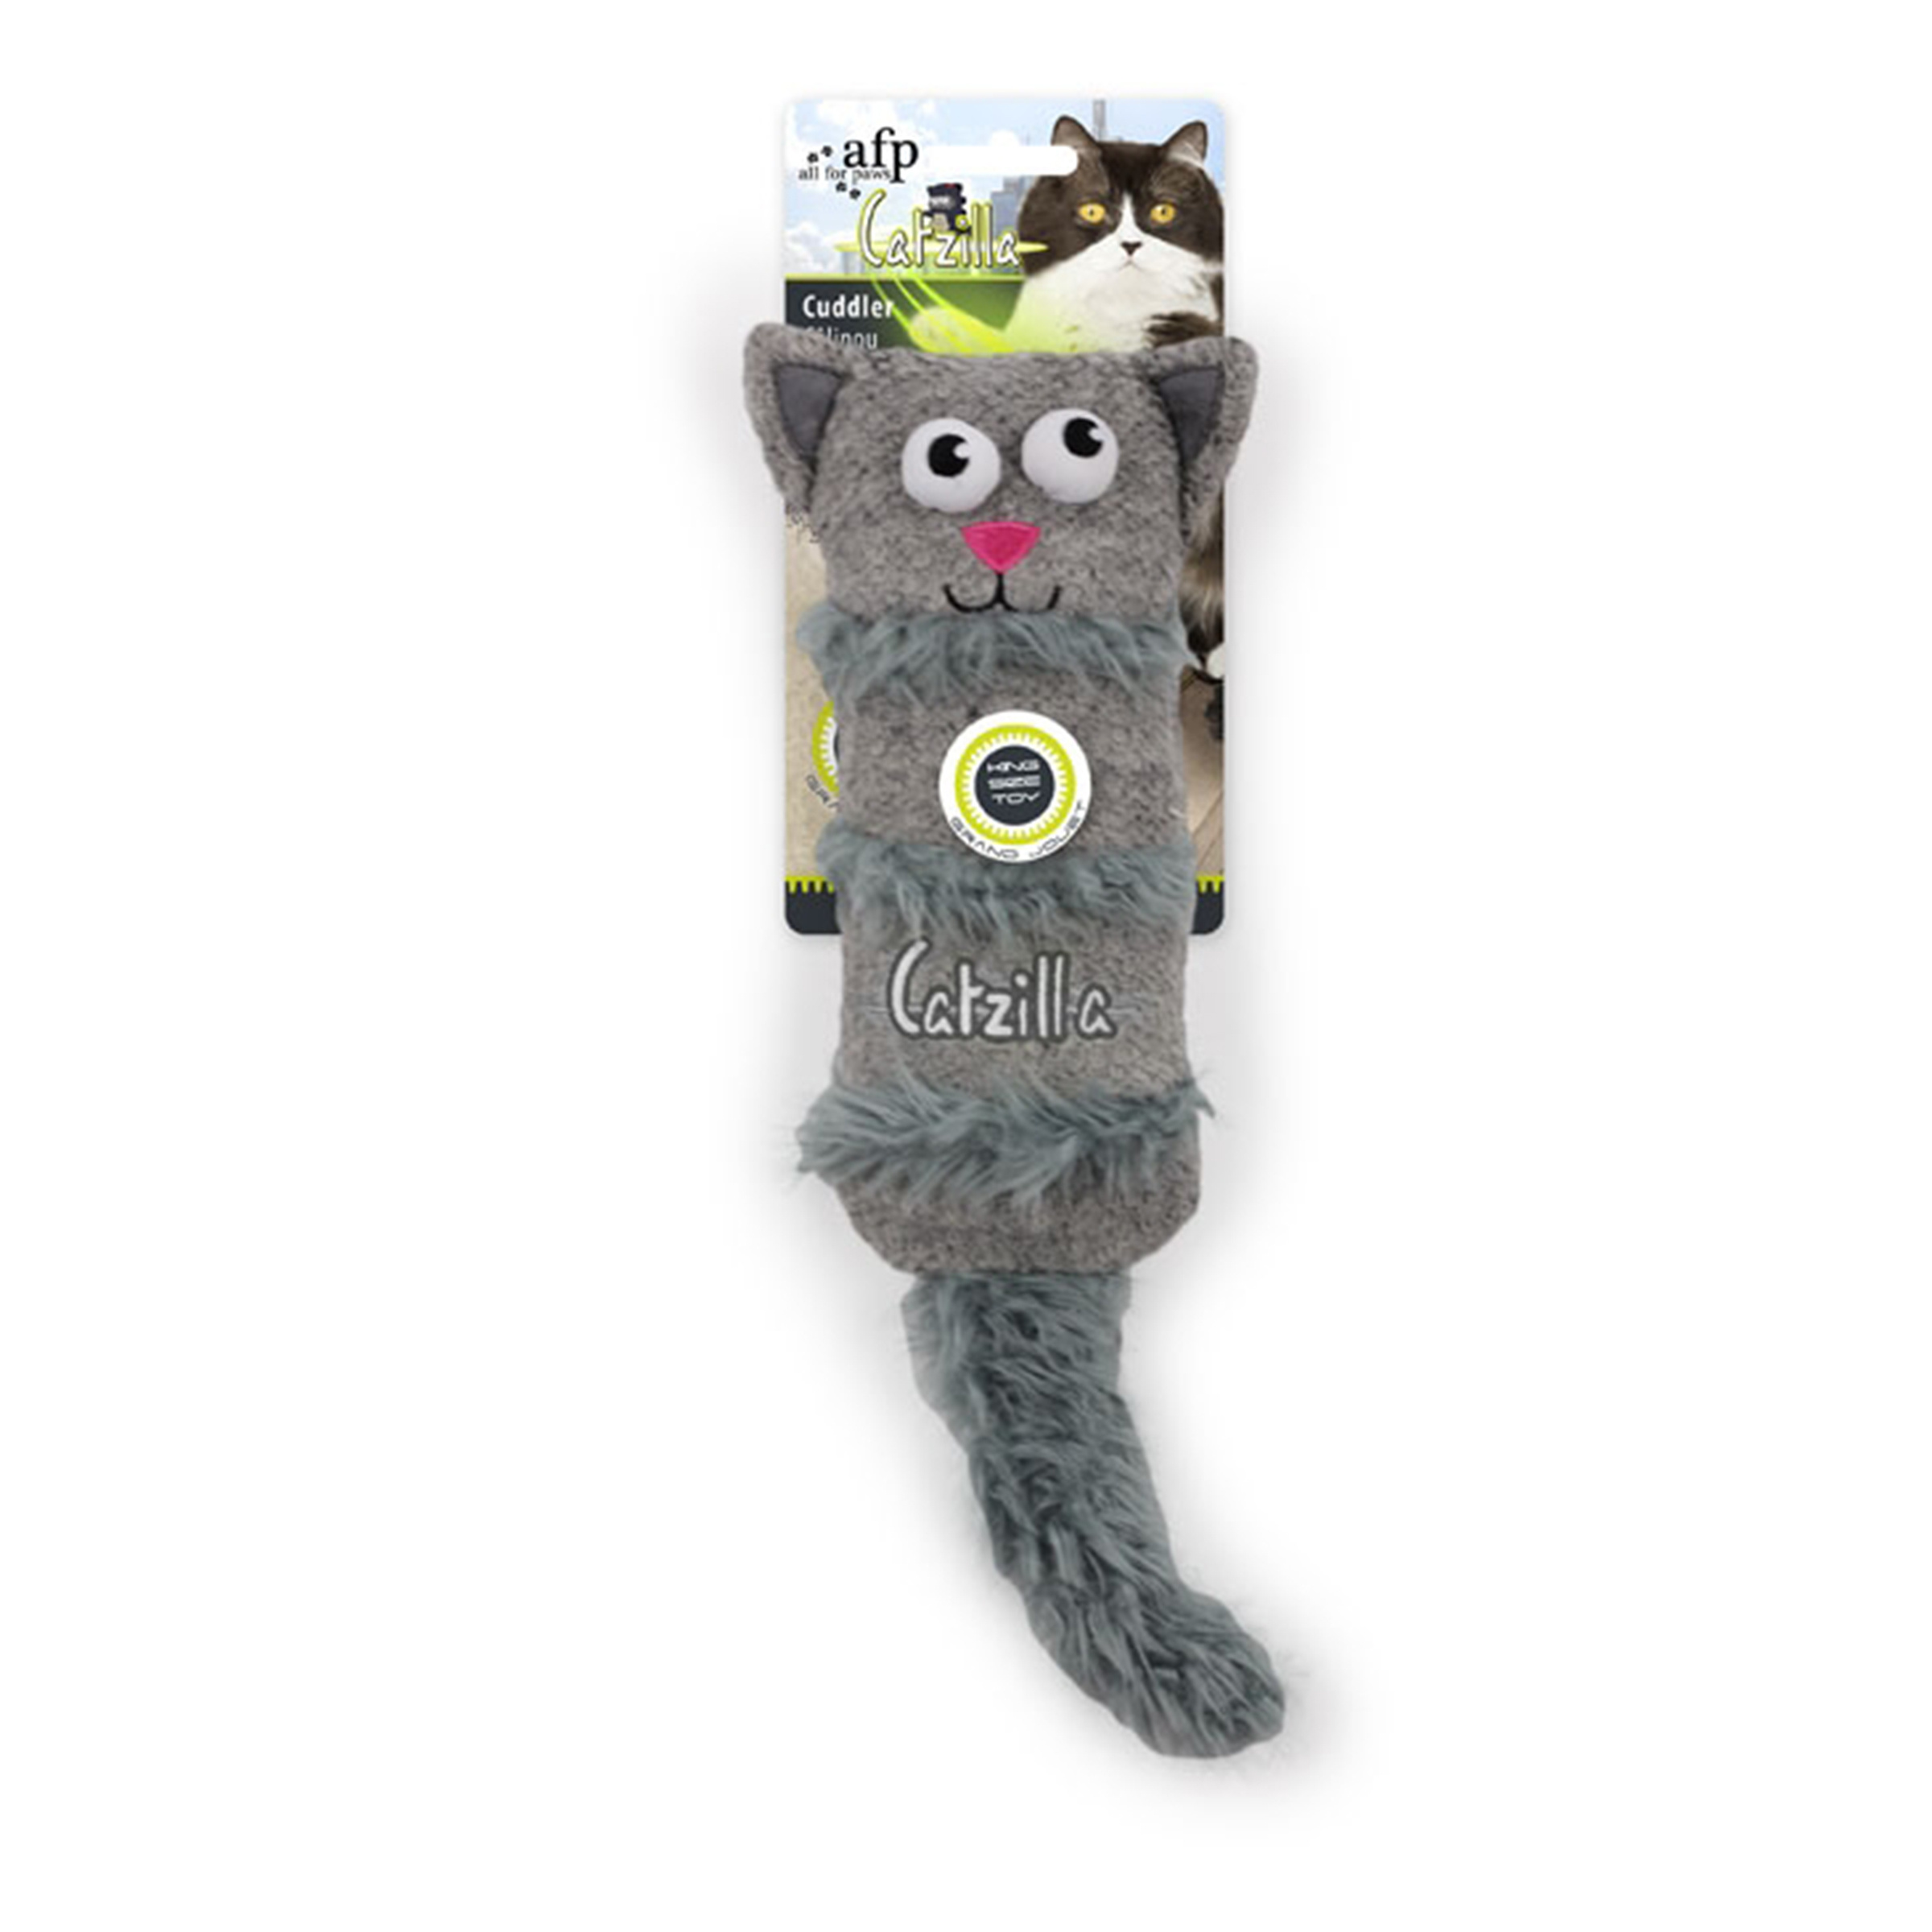 Image of All for Paws Catzilla Cuddler